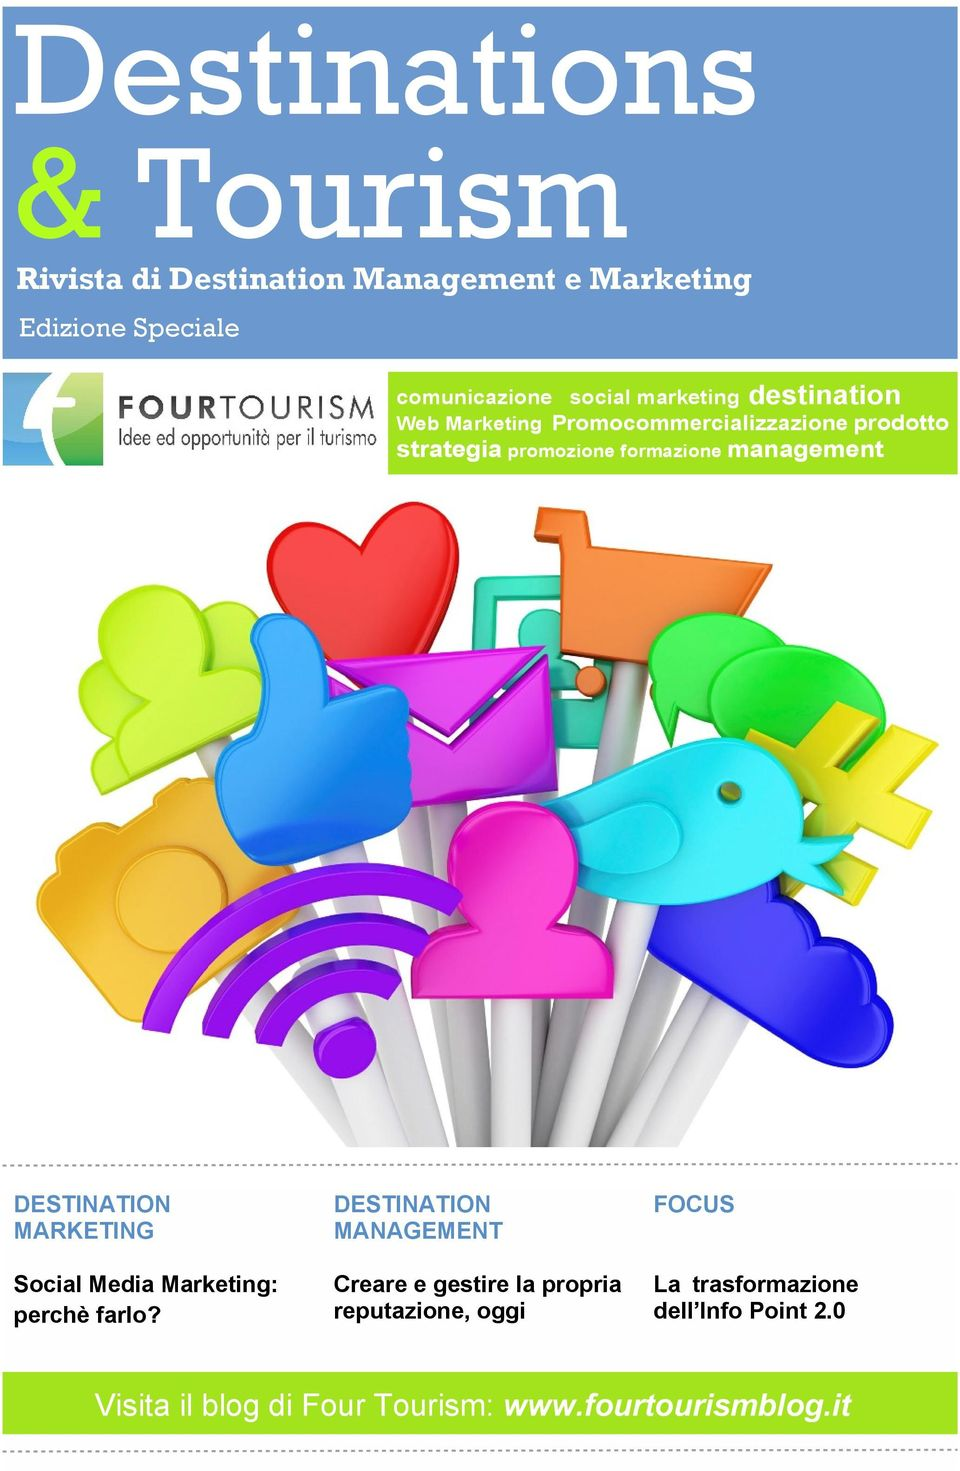 DESTINATION MARKETING Social Media Marketing: perchè farlo?